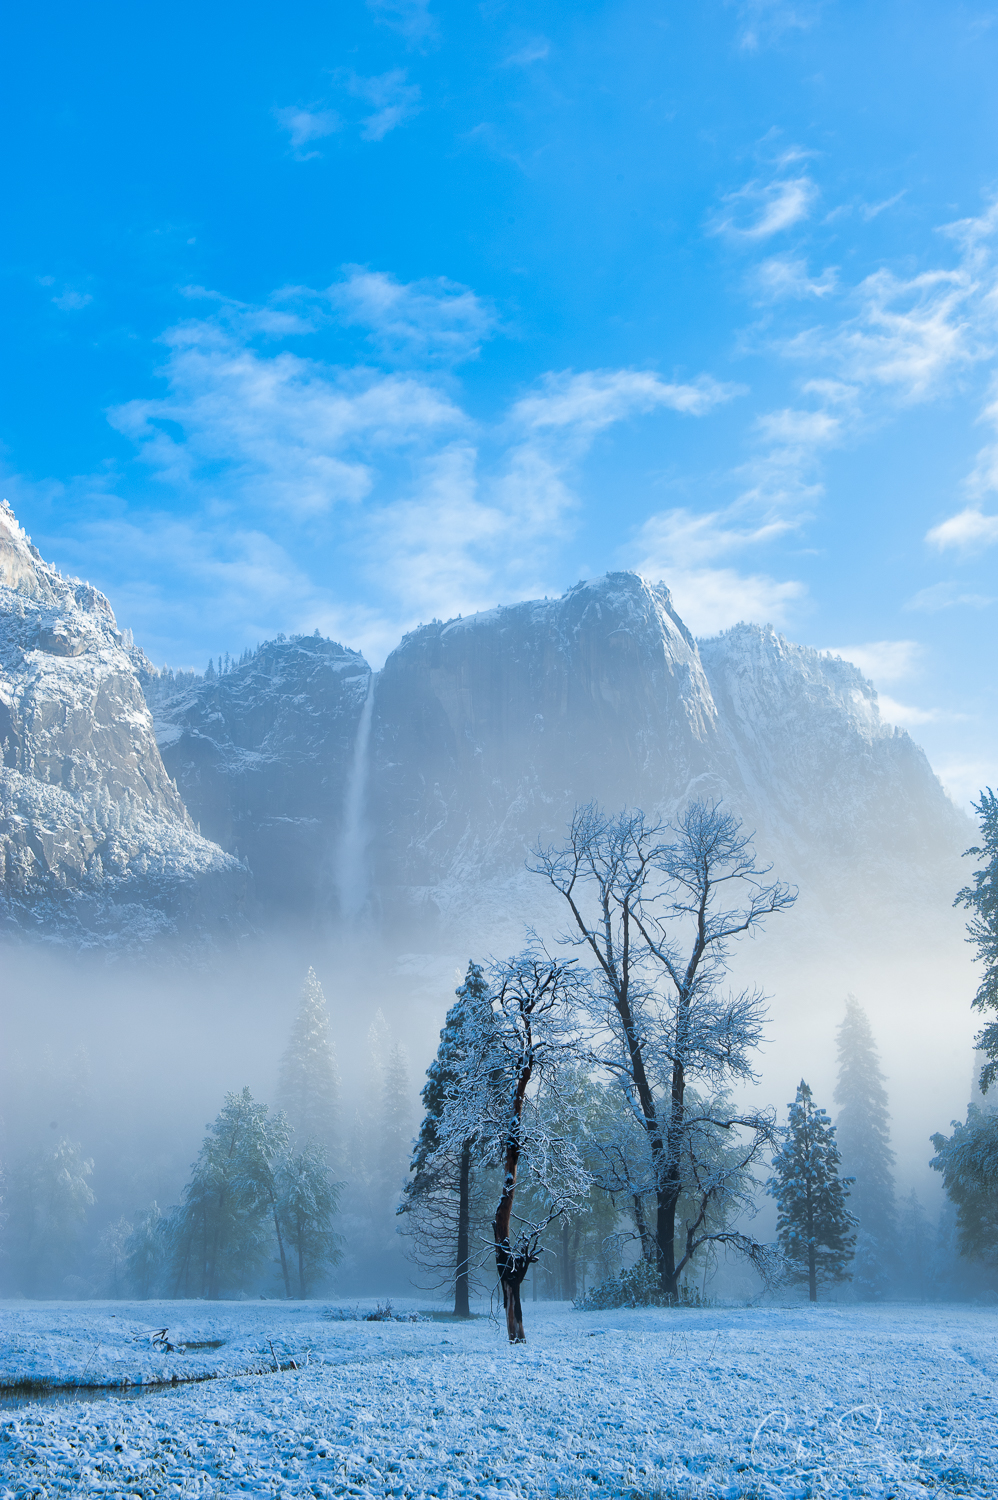 Nikon D3 - Yosemite Landscape - Edited in Photolemur 3